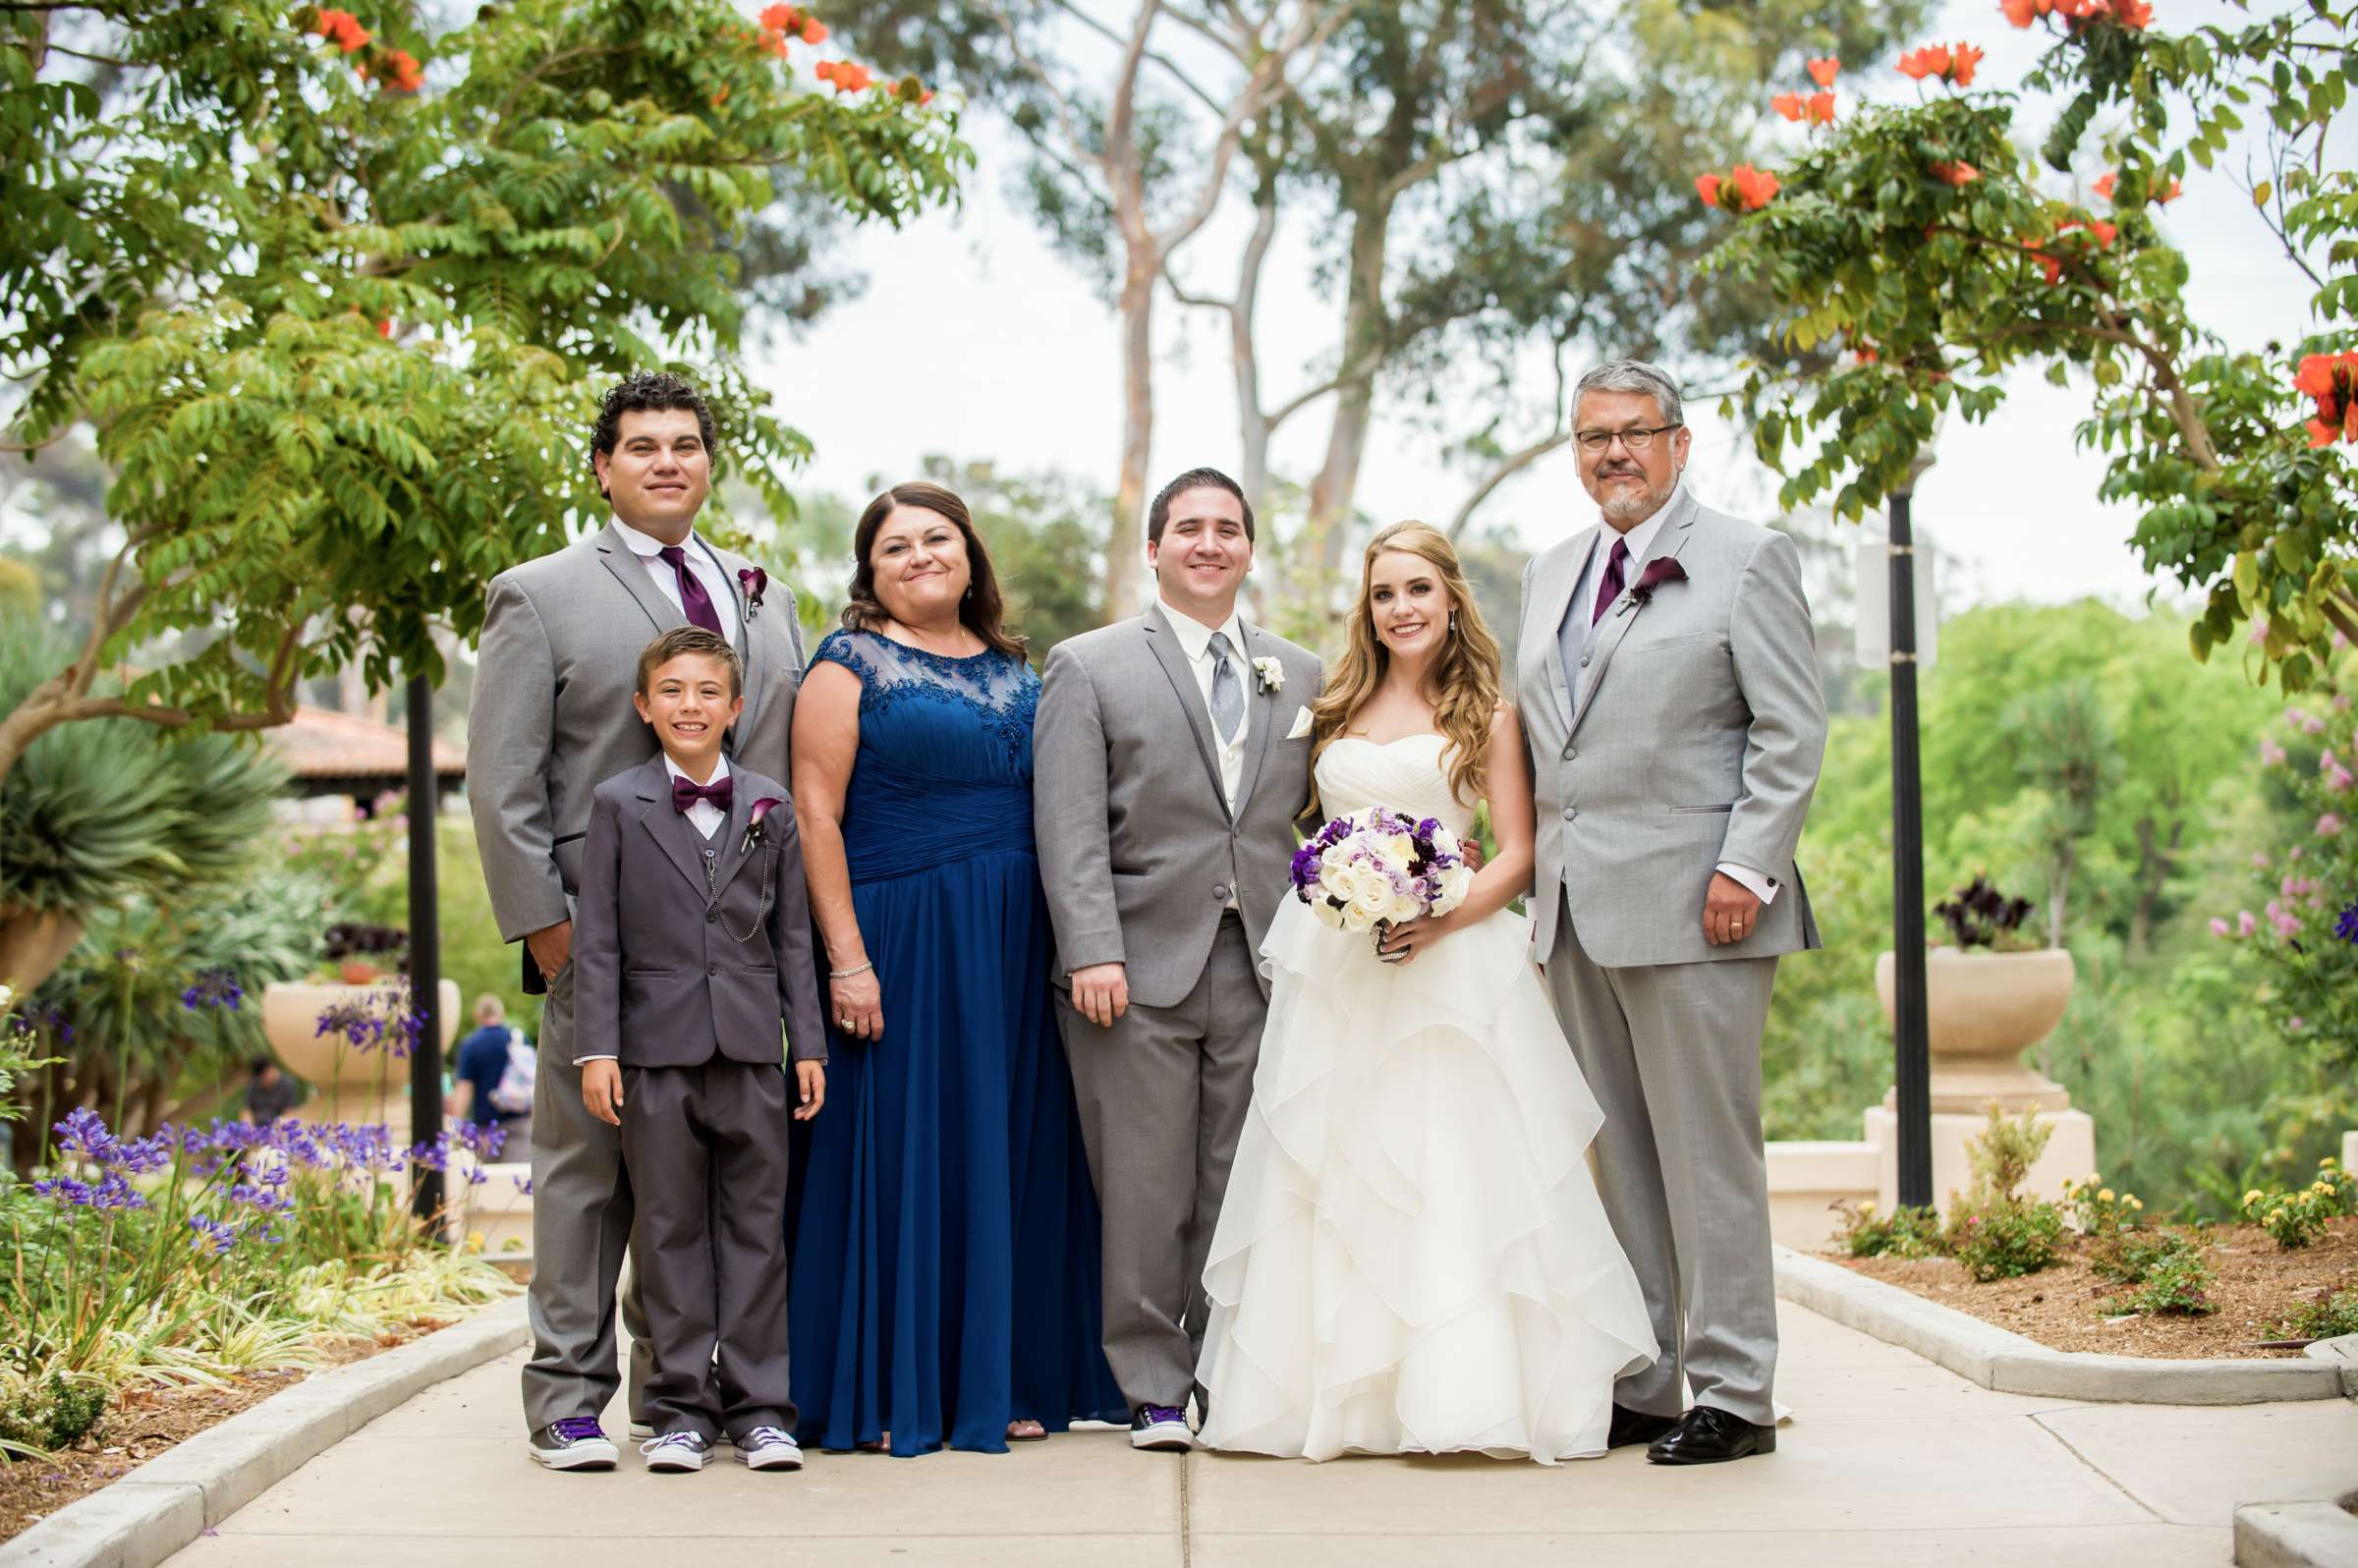 The Prado Wedding coordinated by Victoria Weddings & Events, Melissa and Andrew Wedding Photo #88 by True Photography